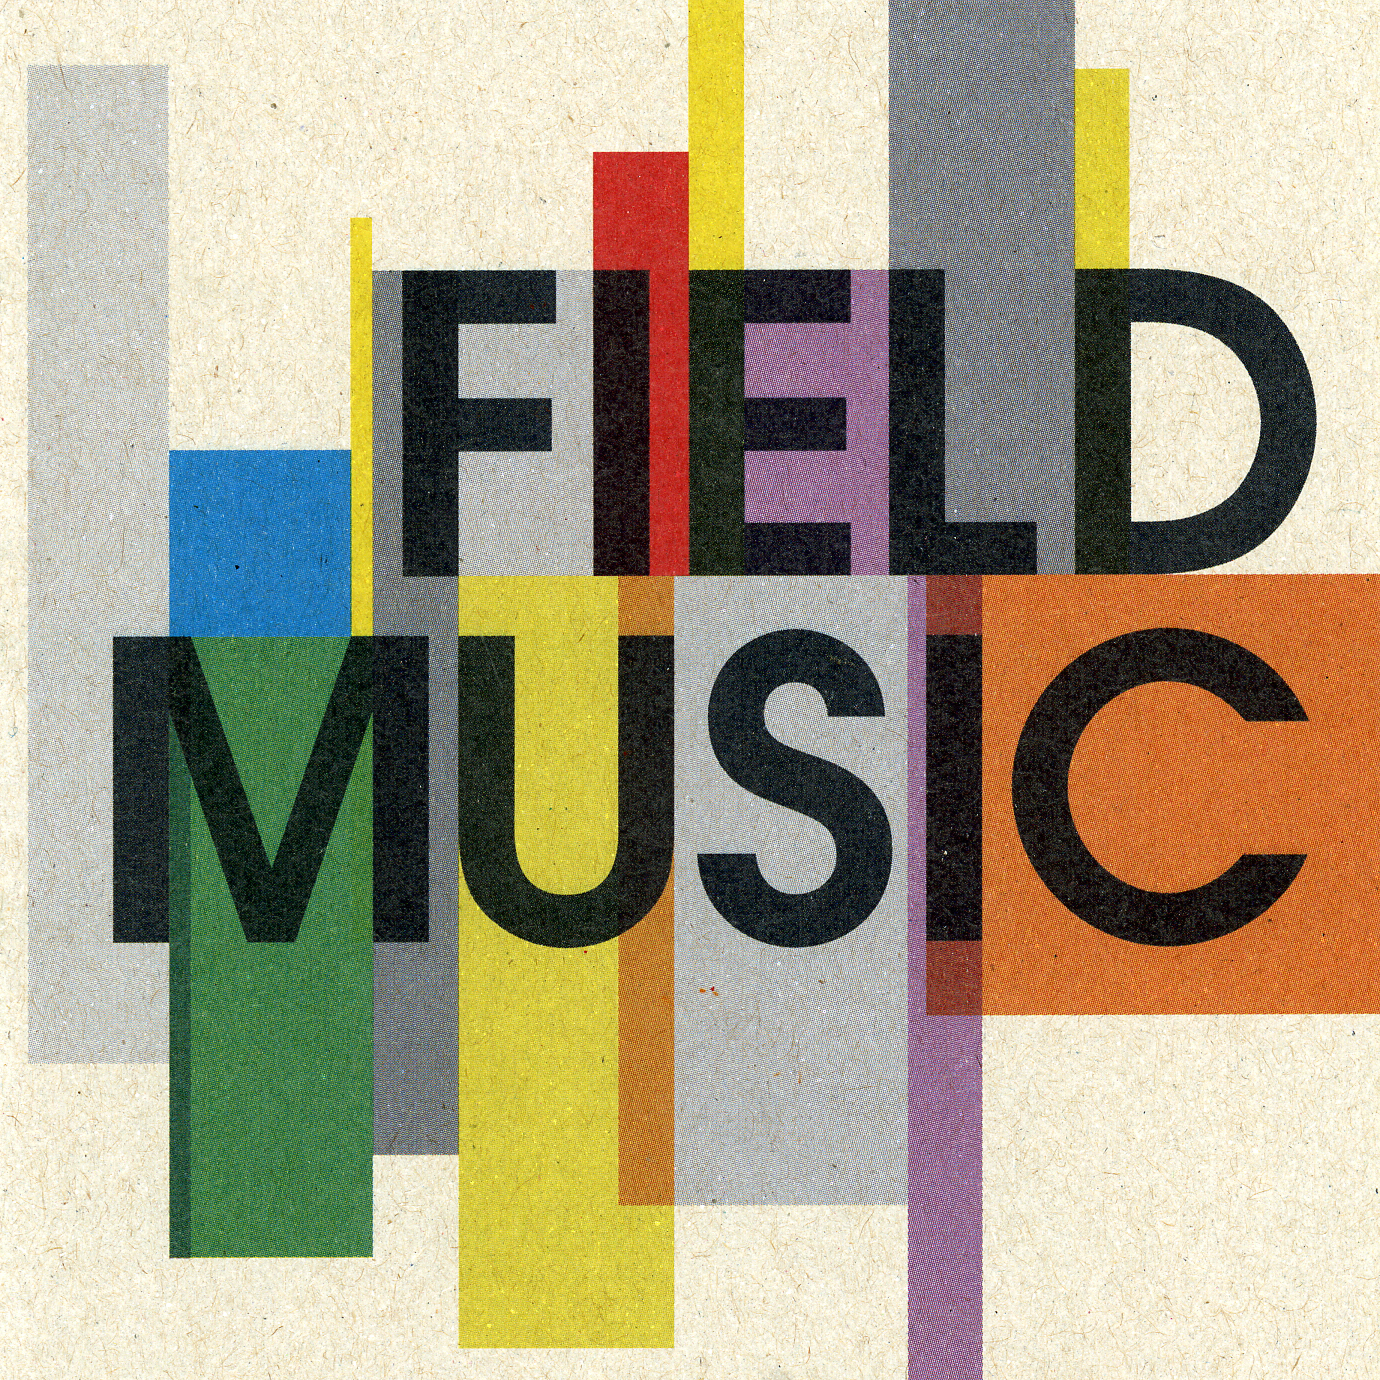 Field Music - Field Music (Measure) [Colored Vinyl] [180 Gram] (Red) (Ylw)